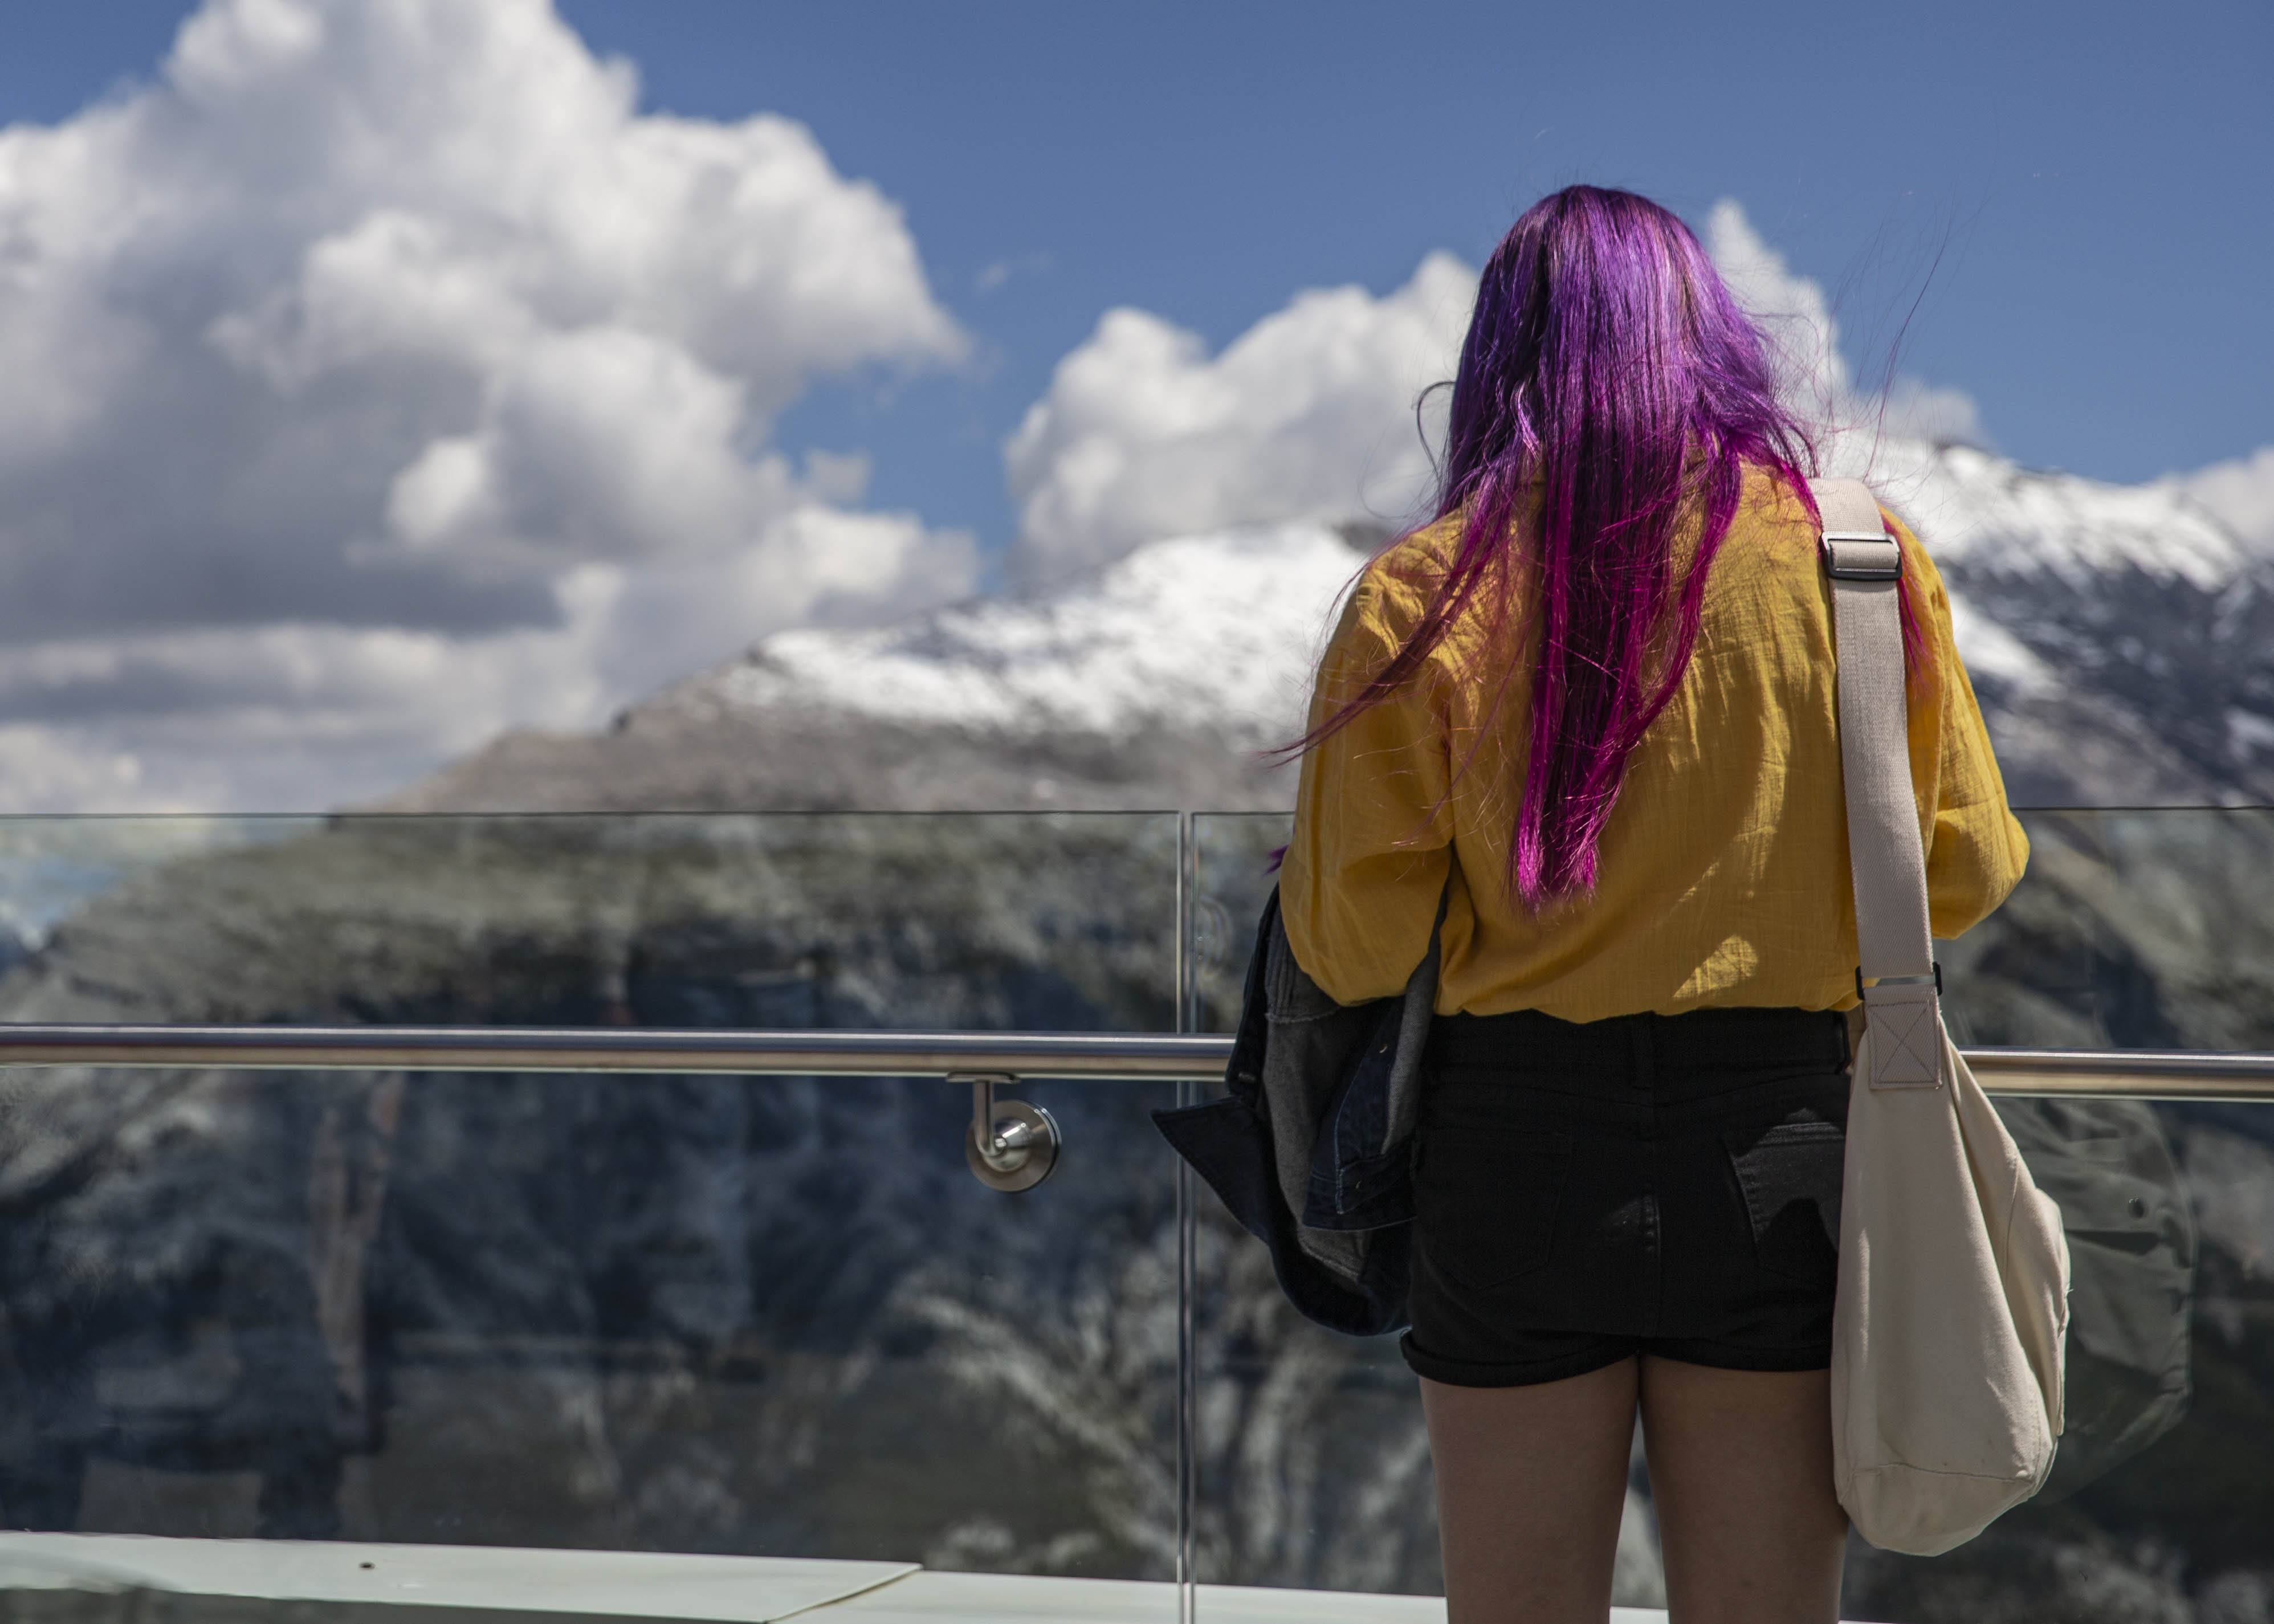 2018-06-17 Sulphur Mountain Hike 23